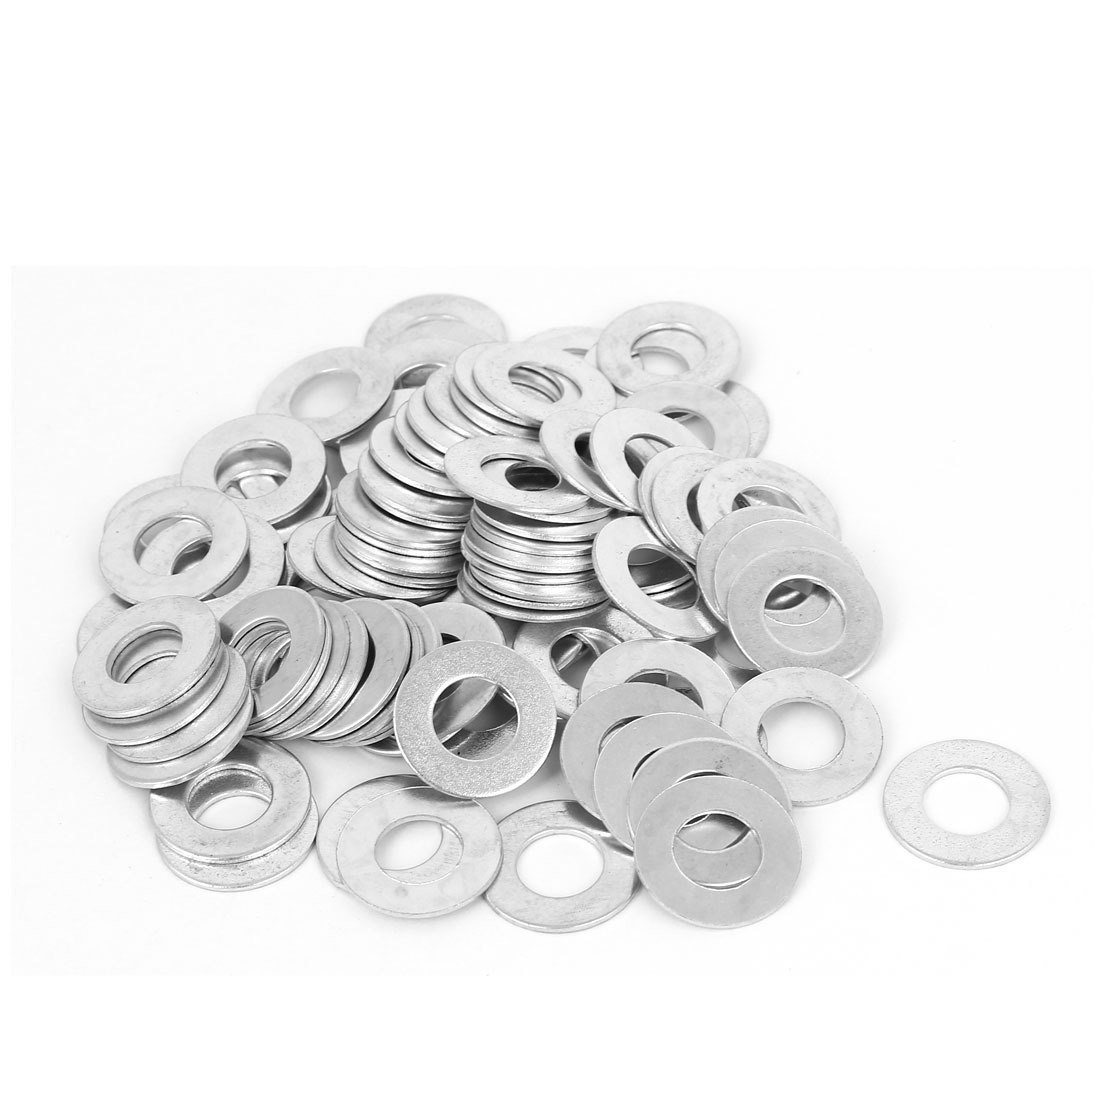 10mm x 20mm x 1mm Zinc Plated Flat Spacers Washers Gaskets Fasteners GB97 90PCS